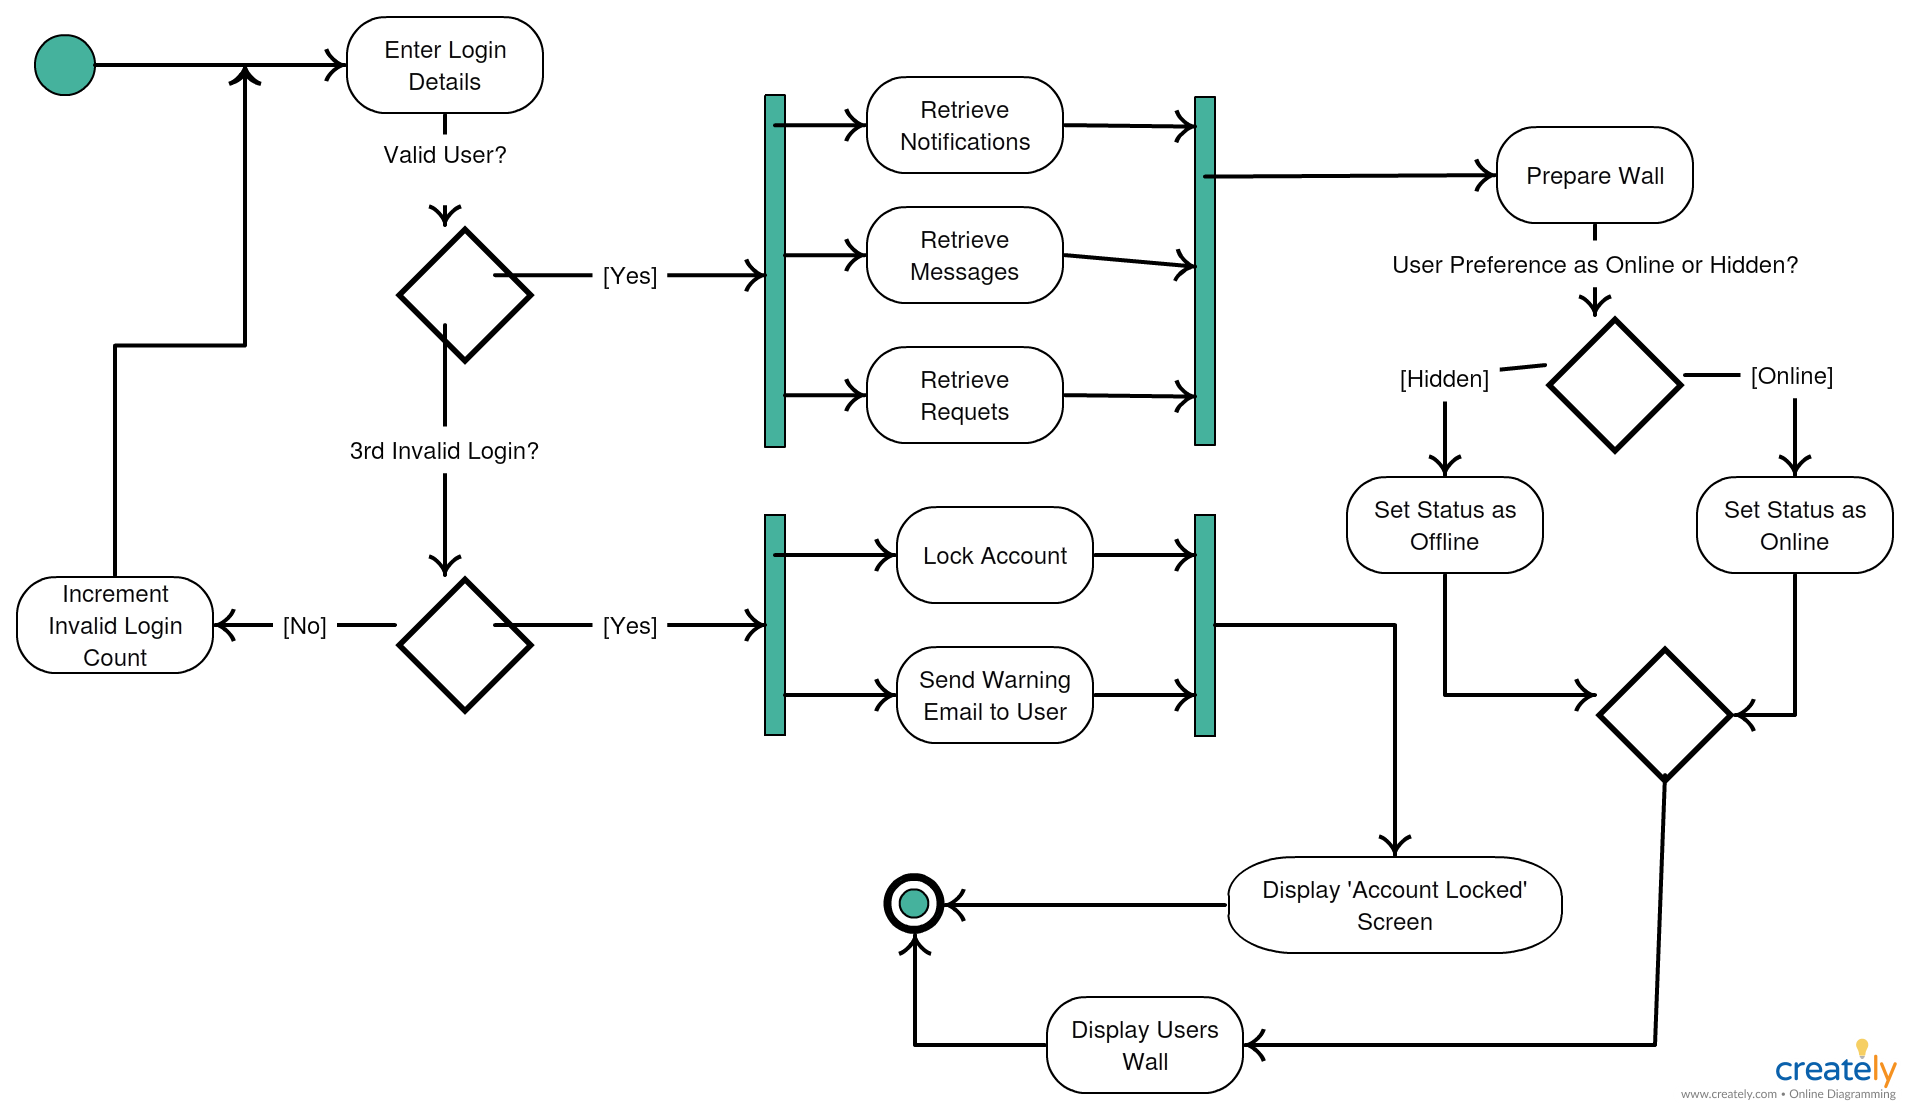 hight resolution of an activity diagram visually presents a series of actions or flow of control in a system